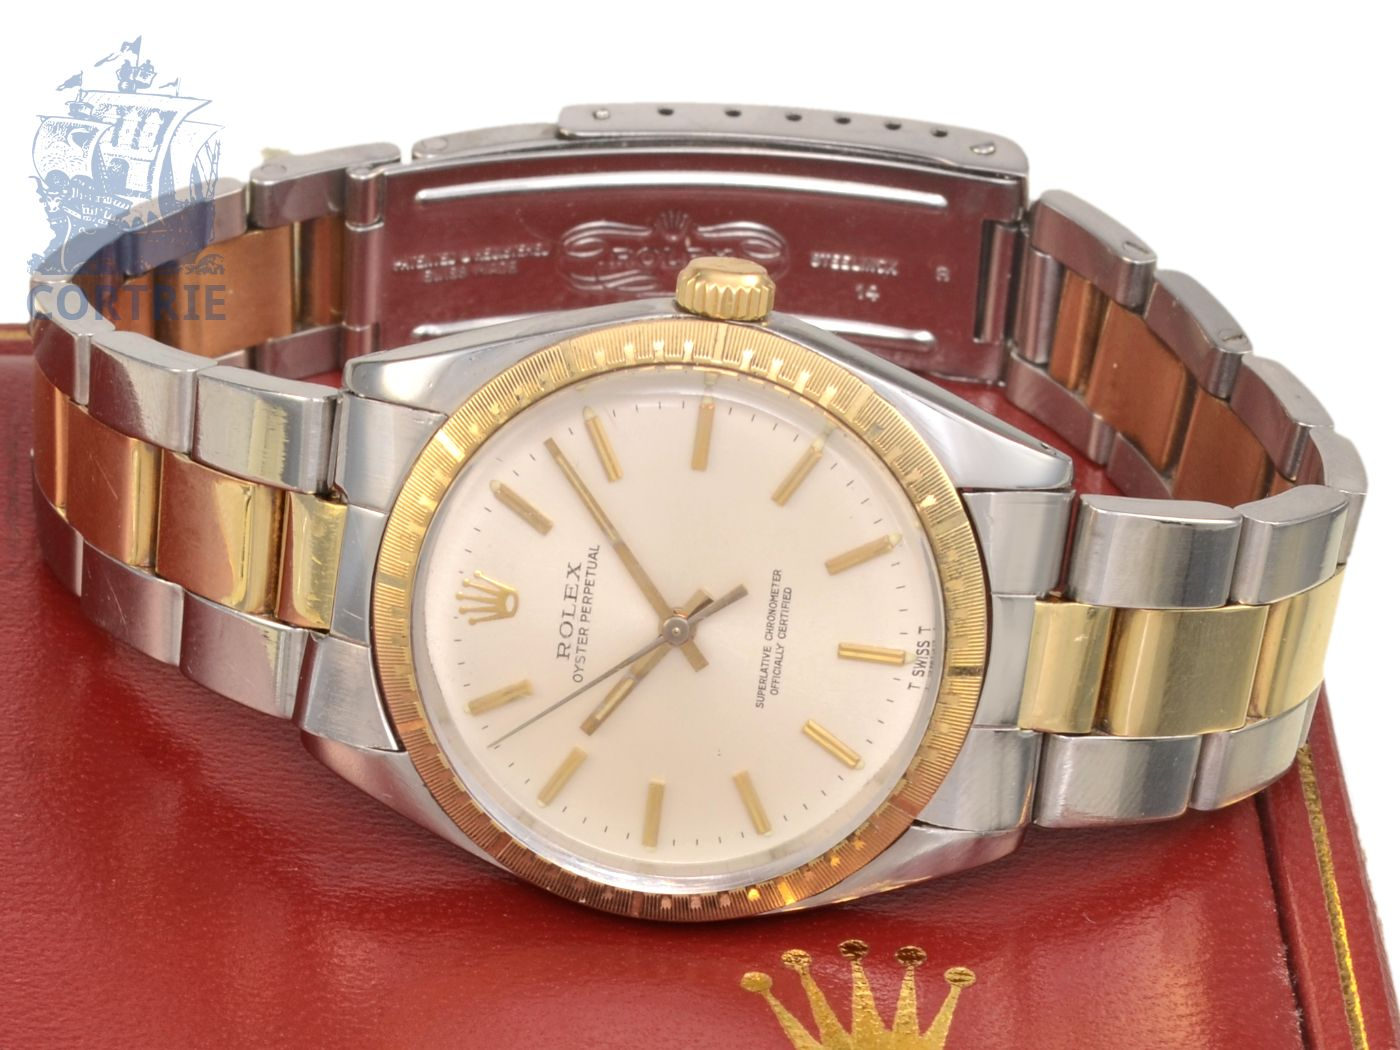 Wristwatch: vintage Rolex Oyster Chronometer, steel/gold, reference 1038, with original box-